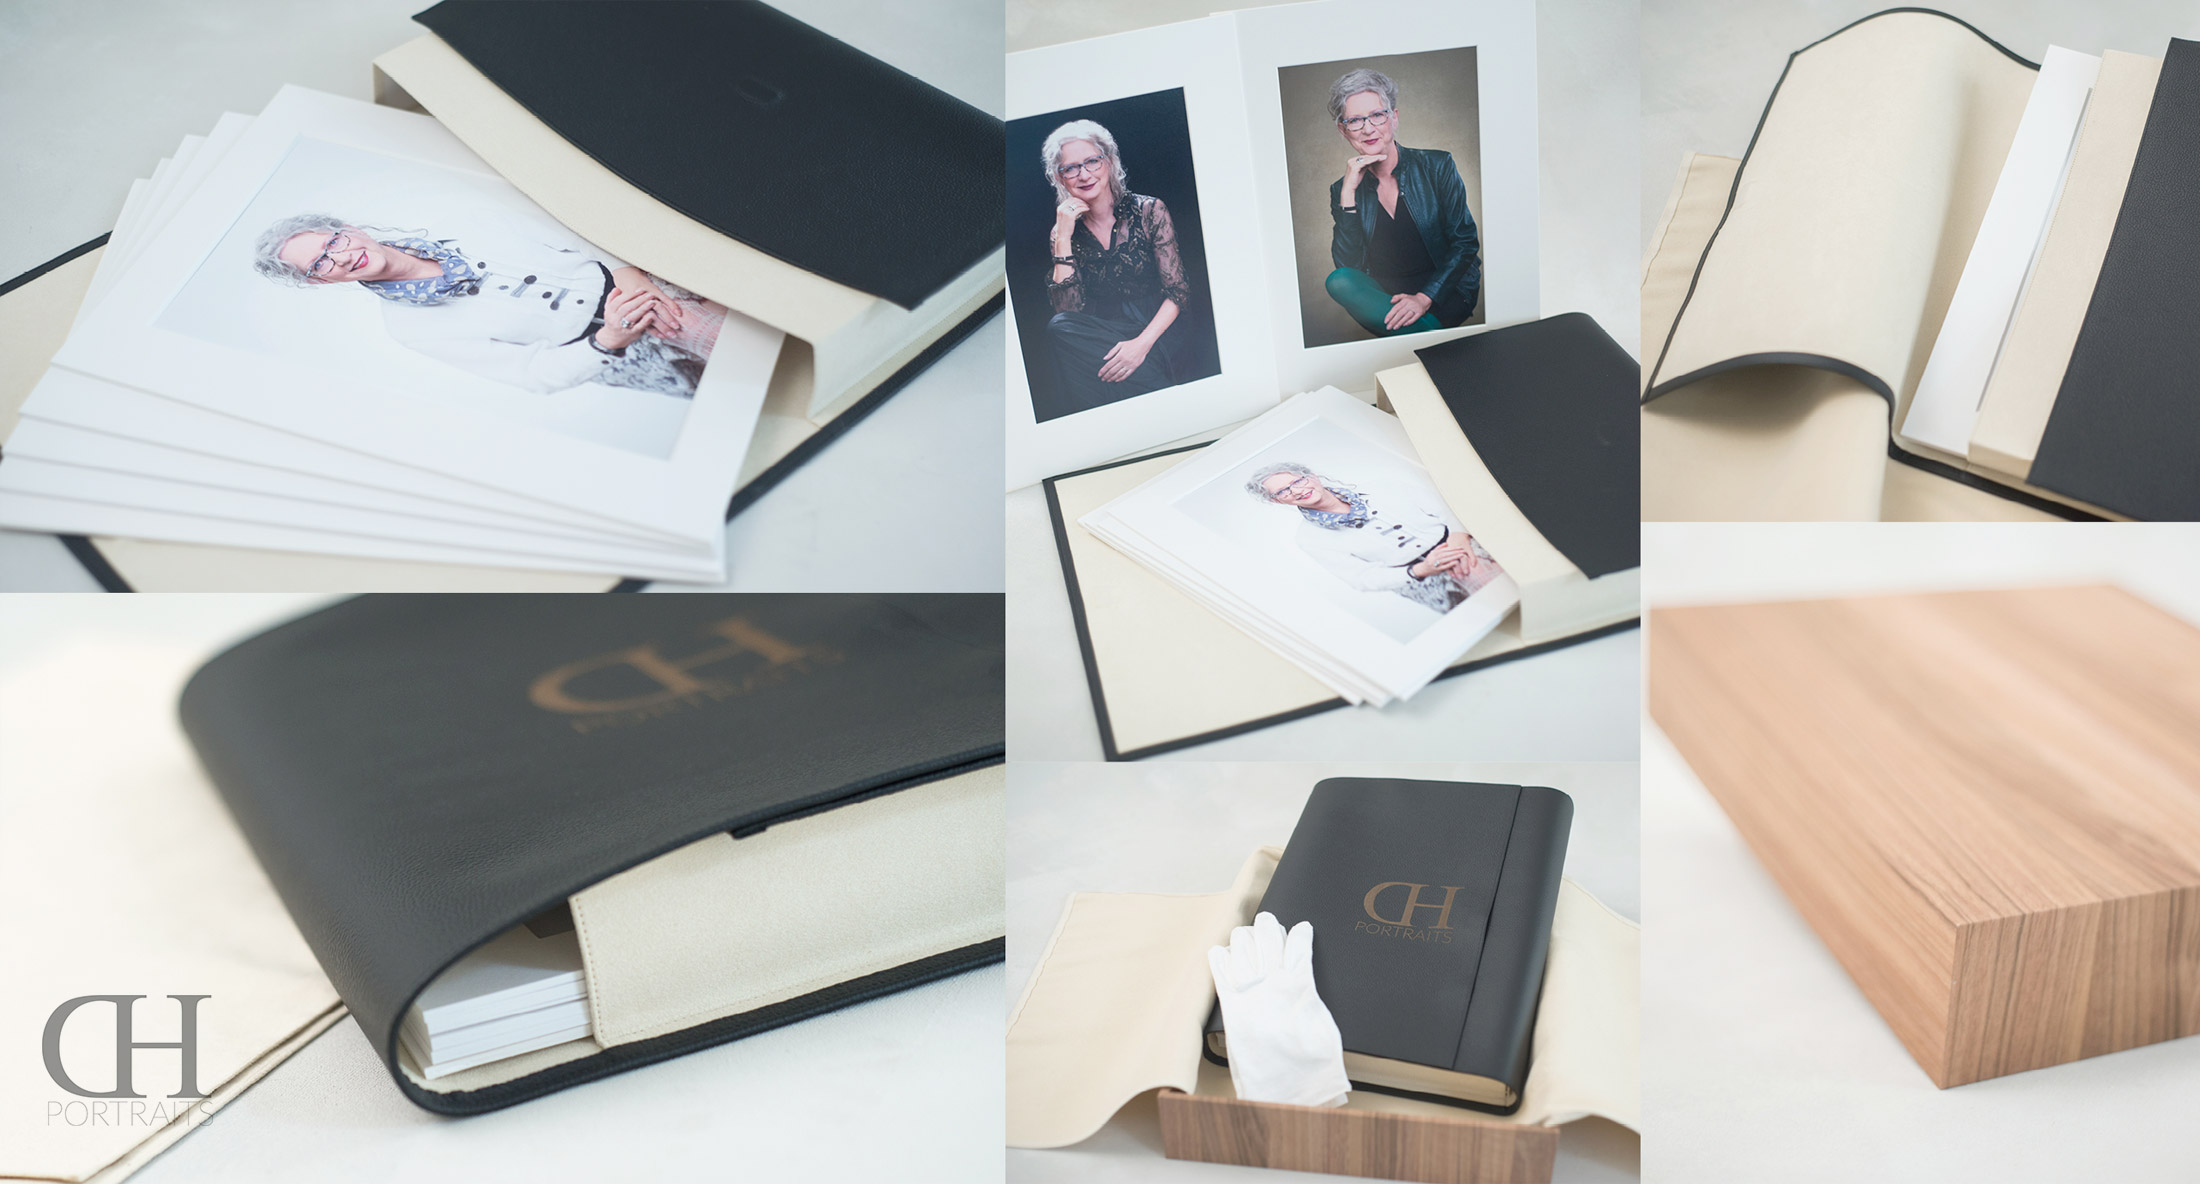 Leather-Portfolio-&-Mats---Exclusive-High-Class-Print-Products---Dan-Hostettler-Portraits